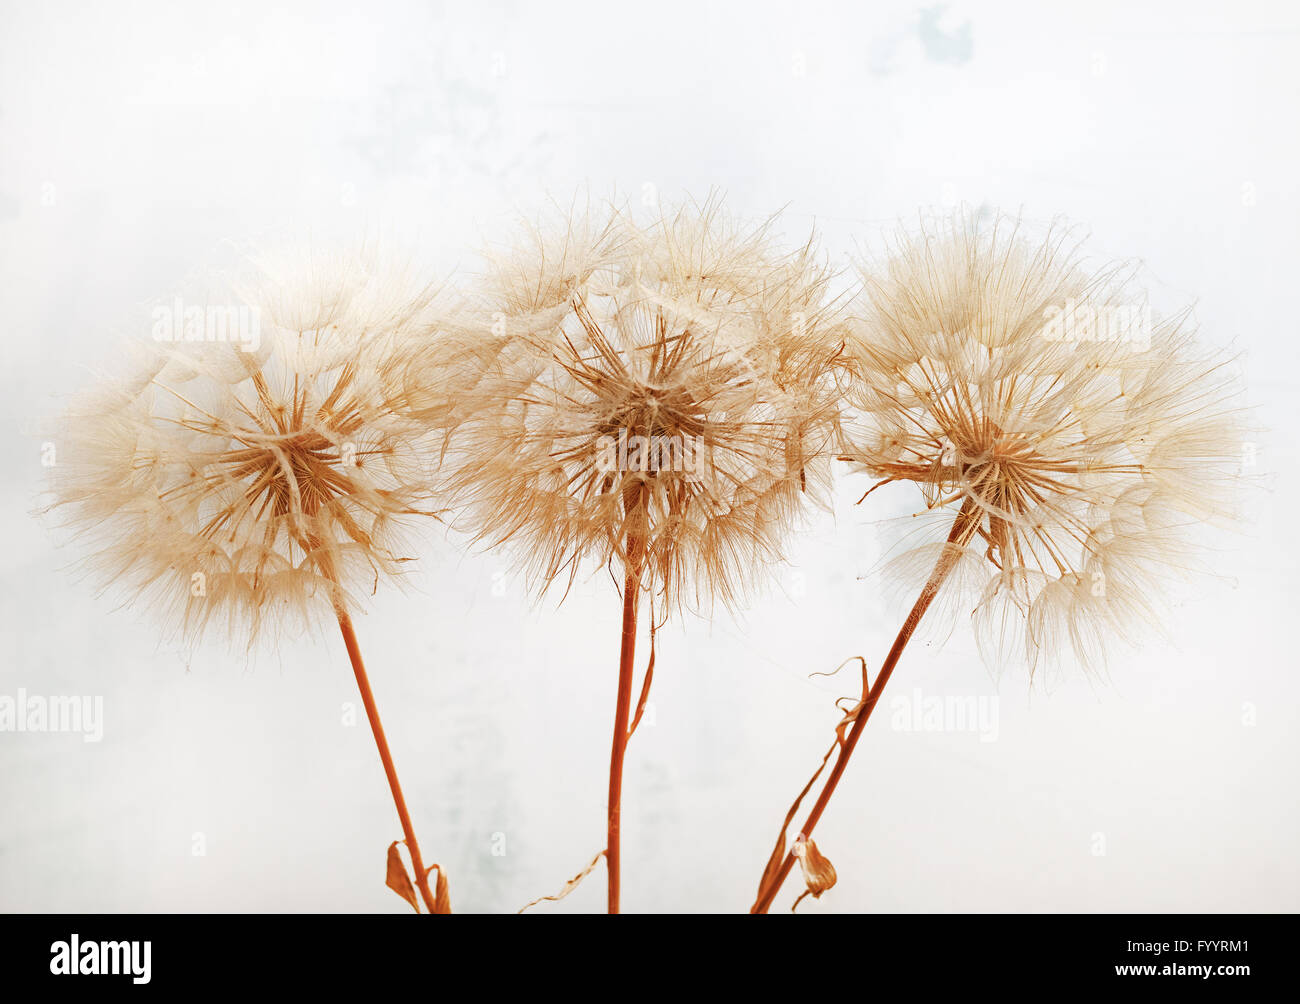 Fluffy dried plants - Stock Image